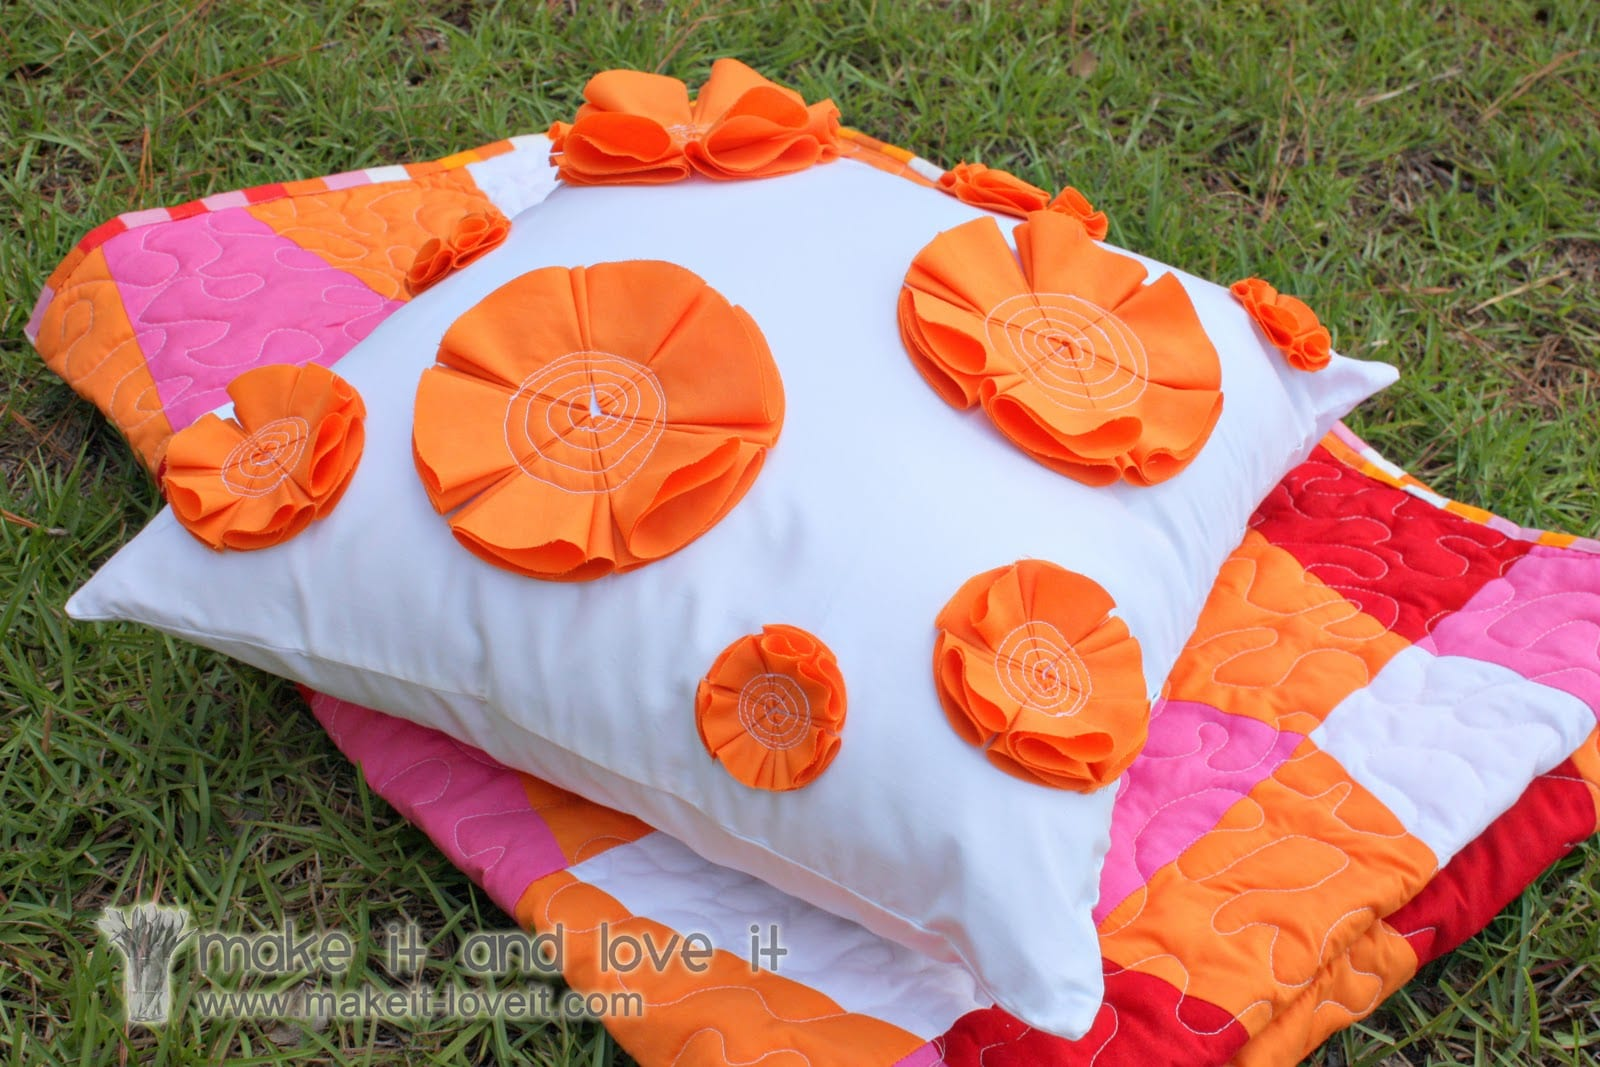 Decorate My Home, Part 21 – Flowered Pillow Cover